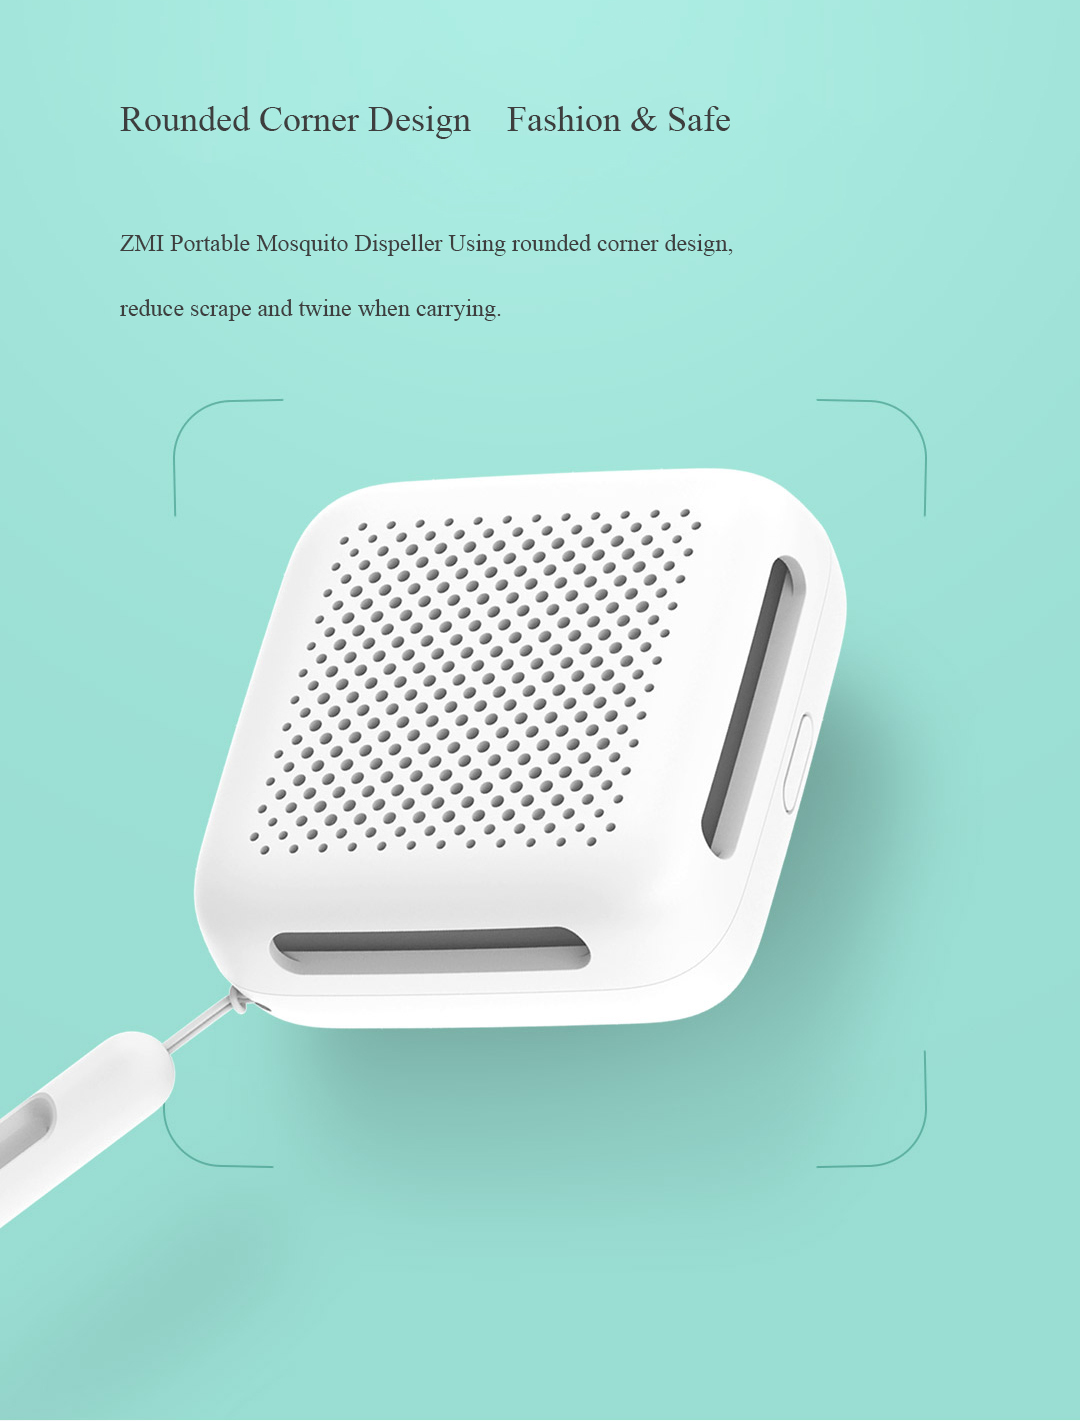 Xiaomi Zmi Newest Portable Mosquito Repeller Dispeller Bugs Epochal Insect And Bug Electronic Kit Shipping Methods